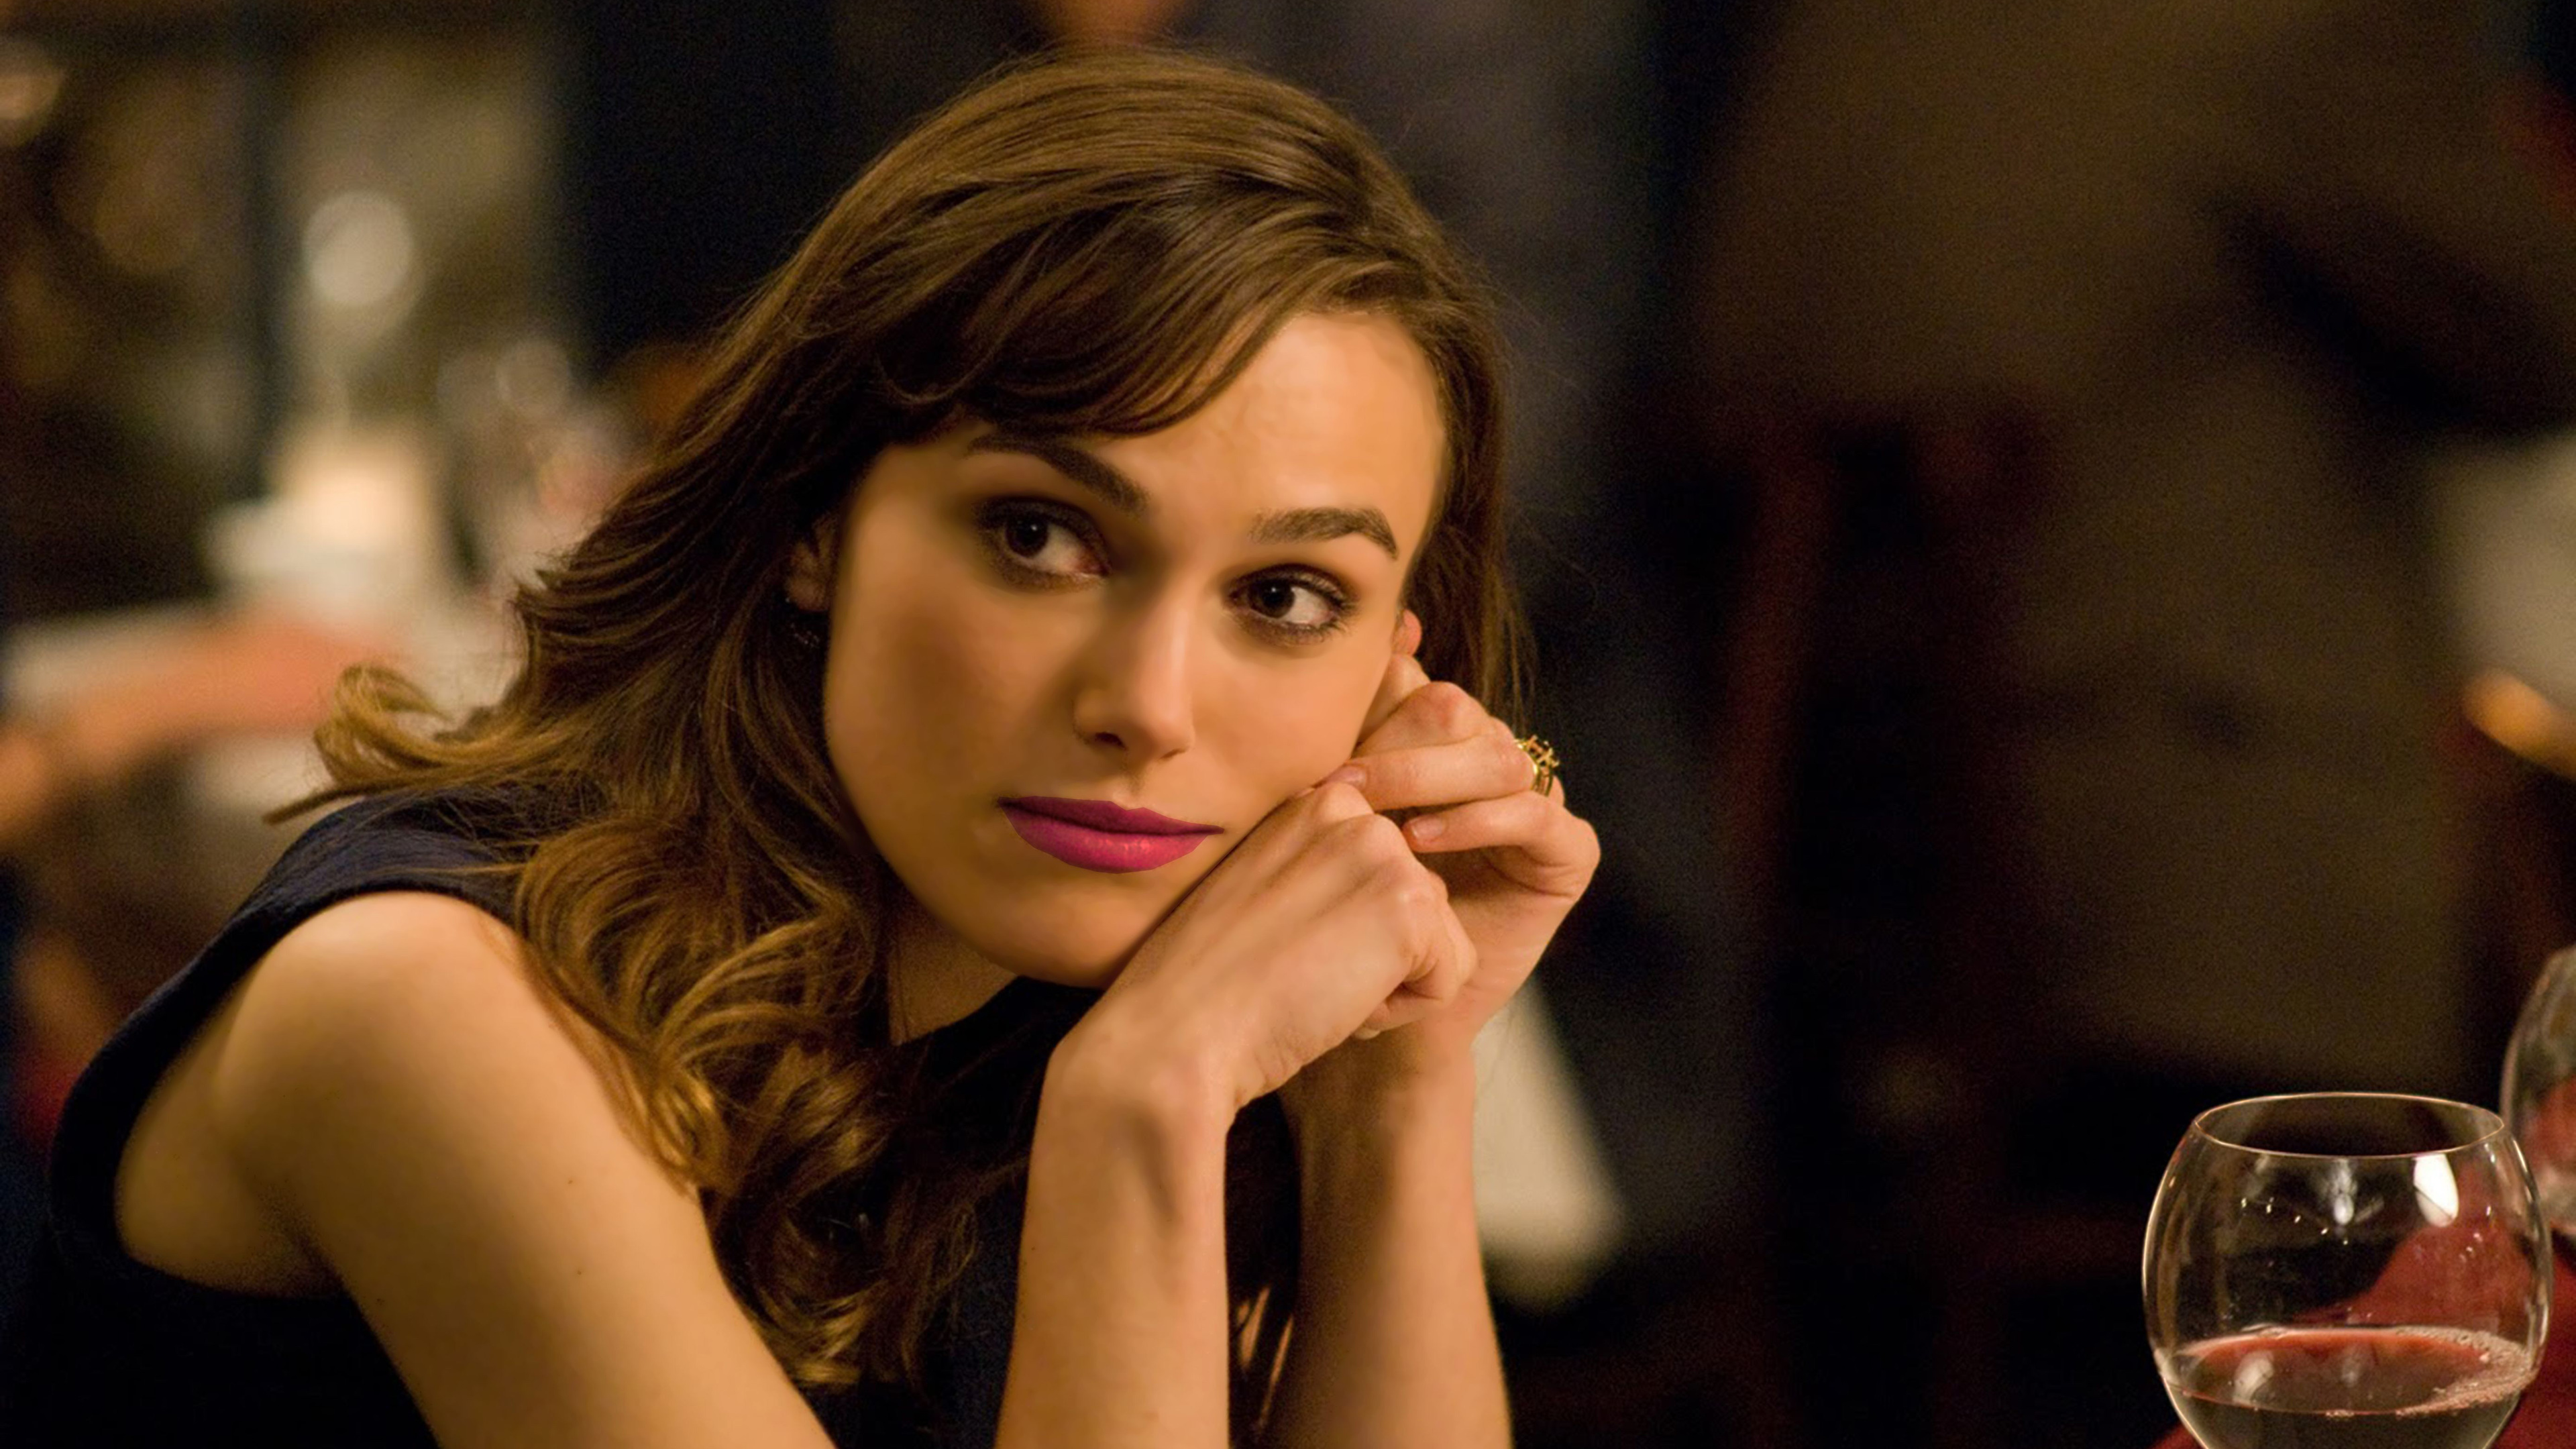 keira knightley 2019 1536946916 - Keira Knightley 2019 - keira knightley wallpapers, hd-wallpapers, girls wallpapers, celebrities wallpapers, 5k wallpapers, 4k-wallpapers